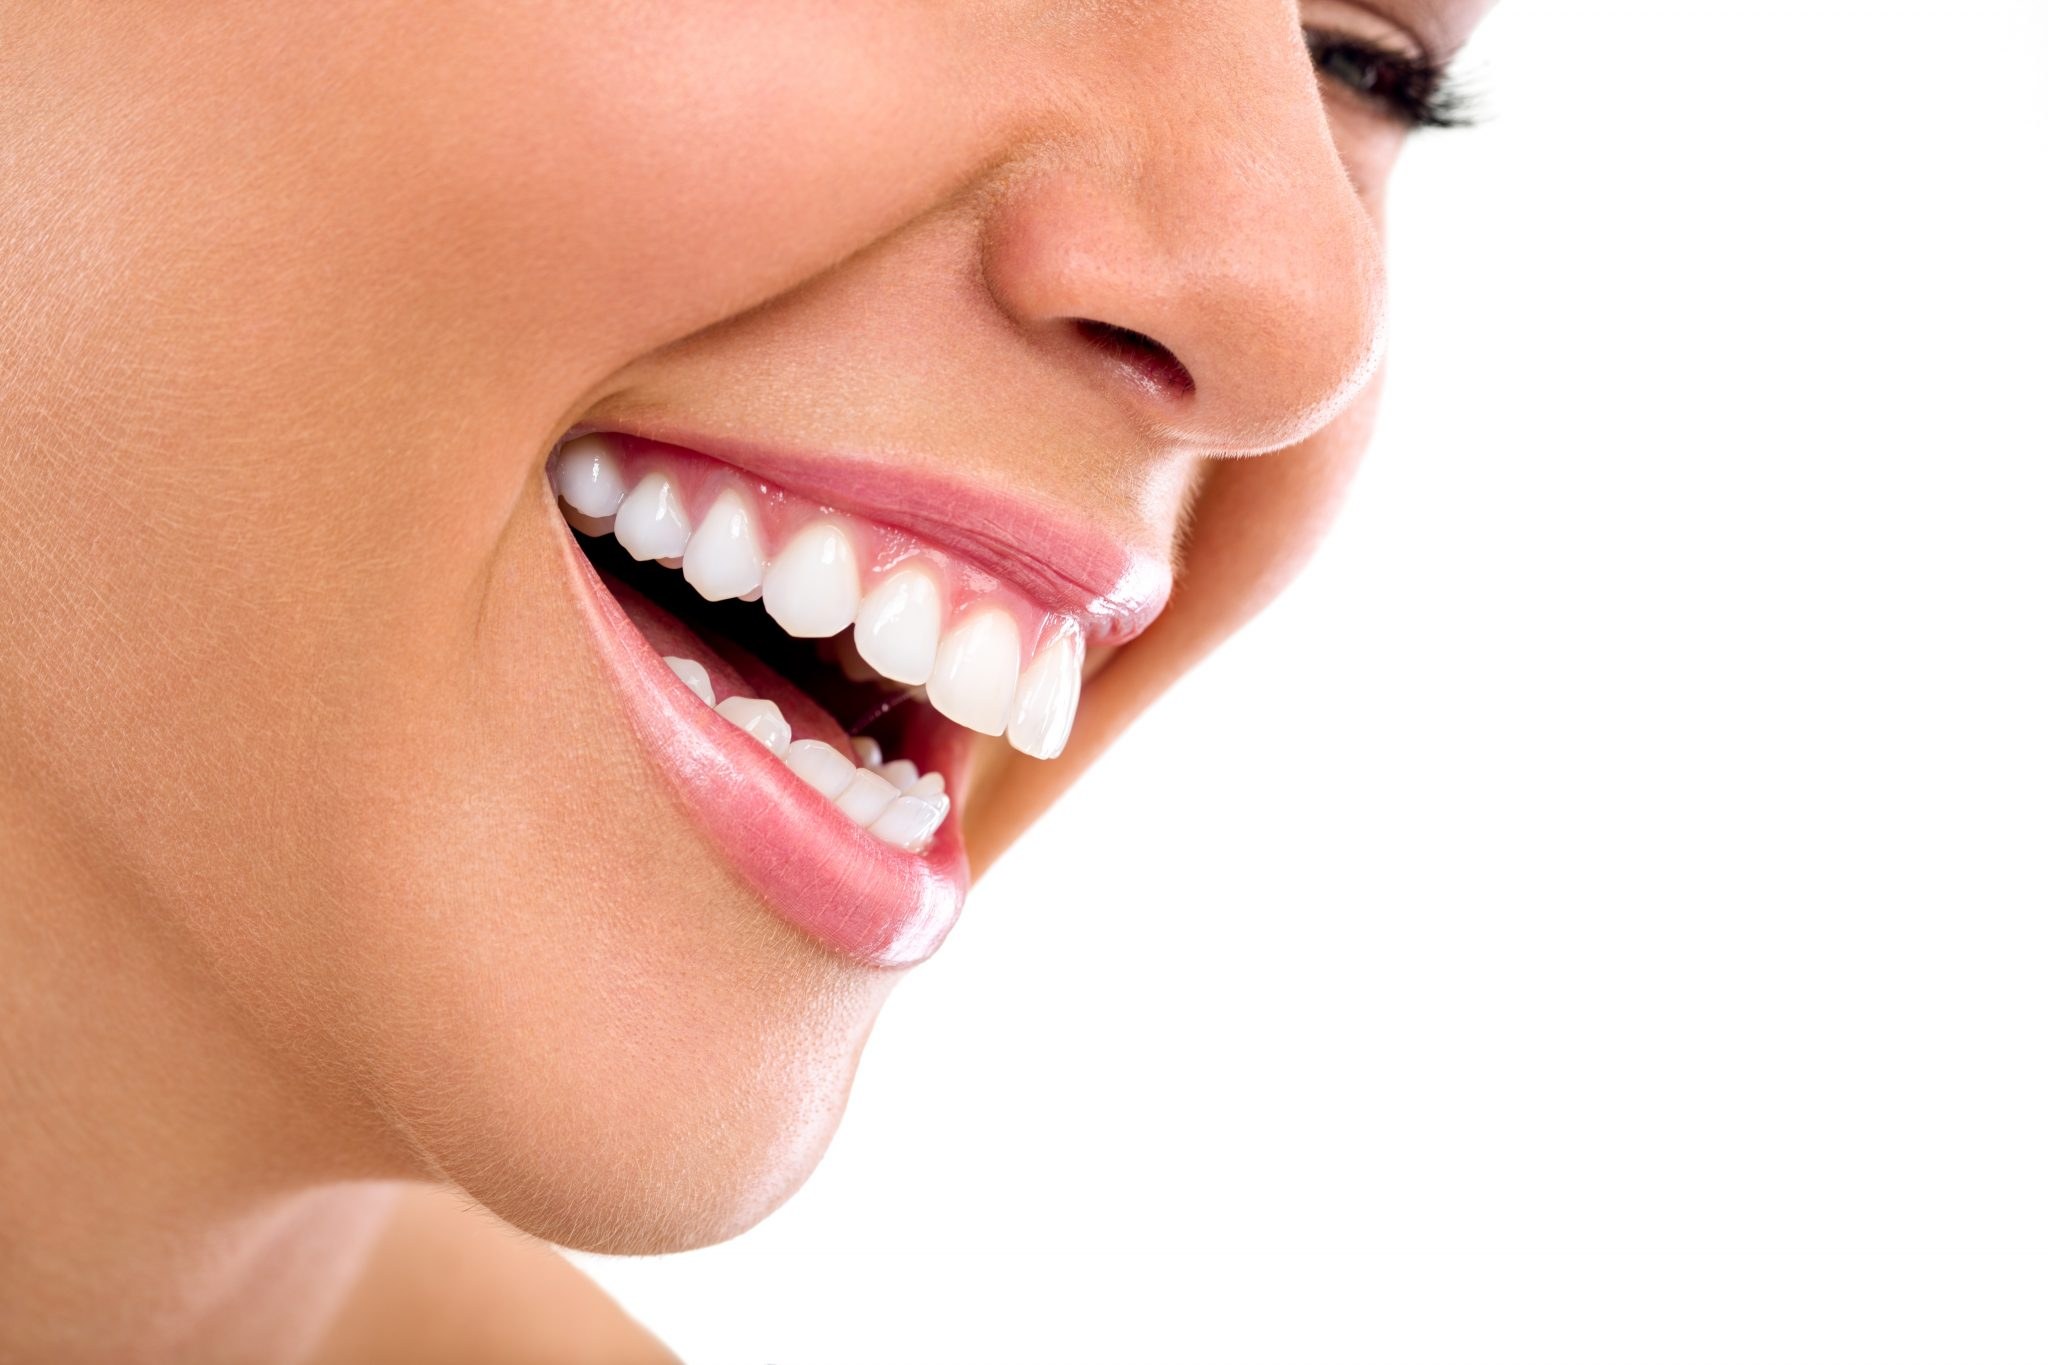 Teeth Whitening: an easy way to transform your smile